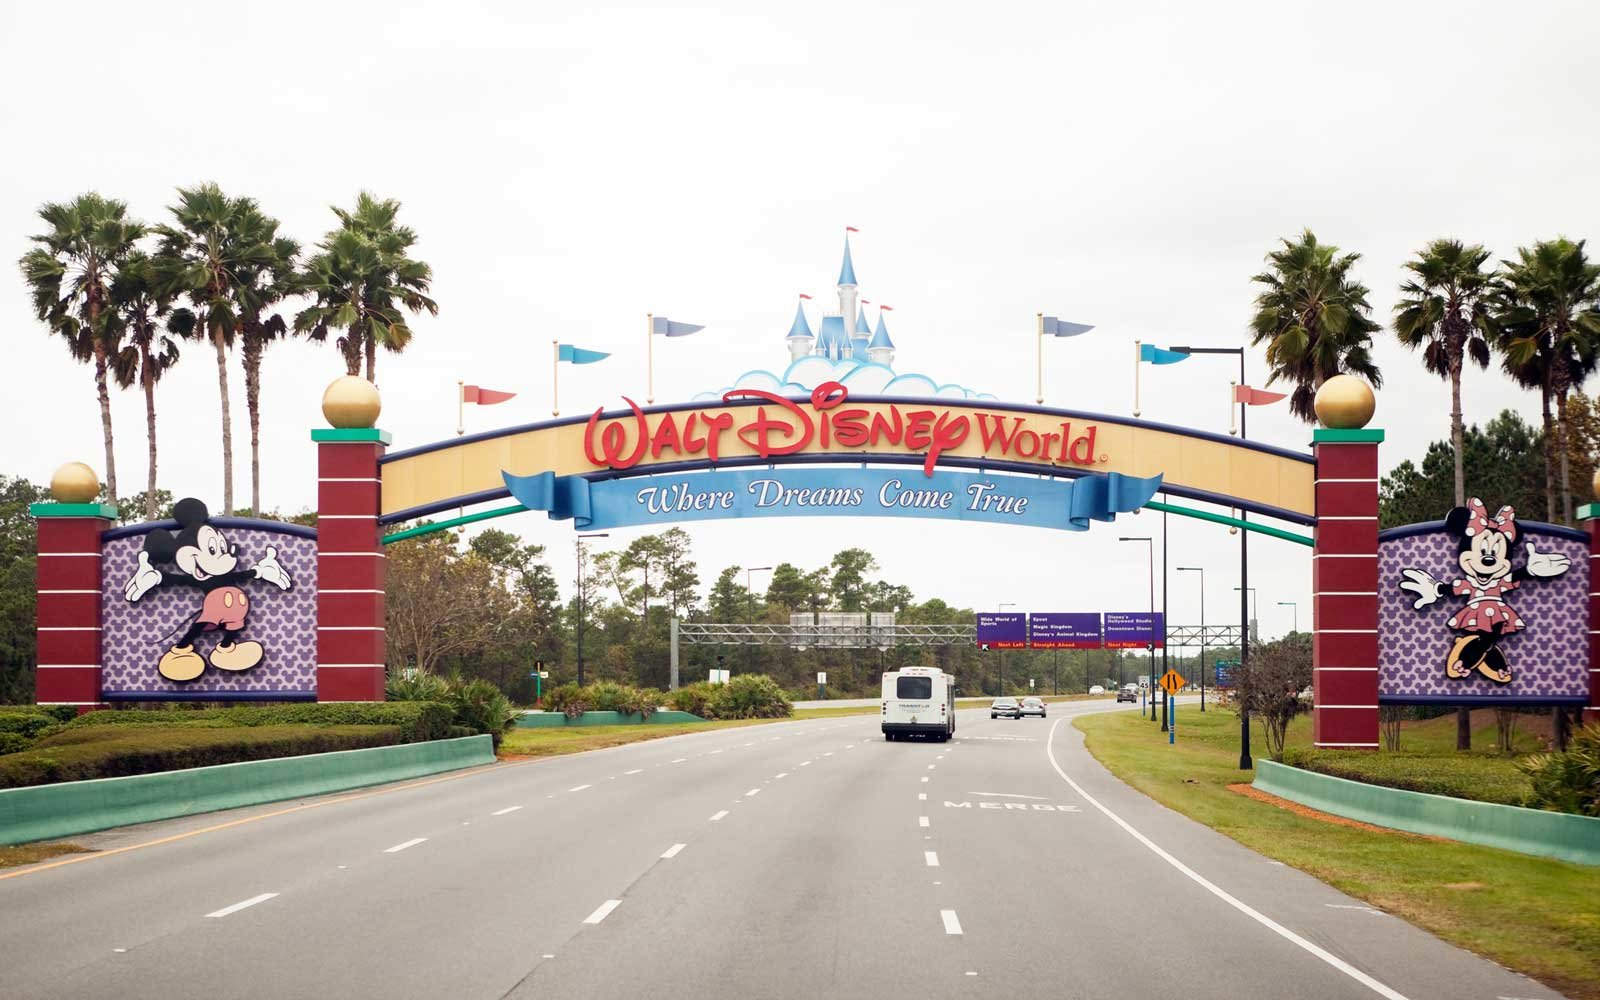 When Will Disney World Reopen After Hurricane Irma